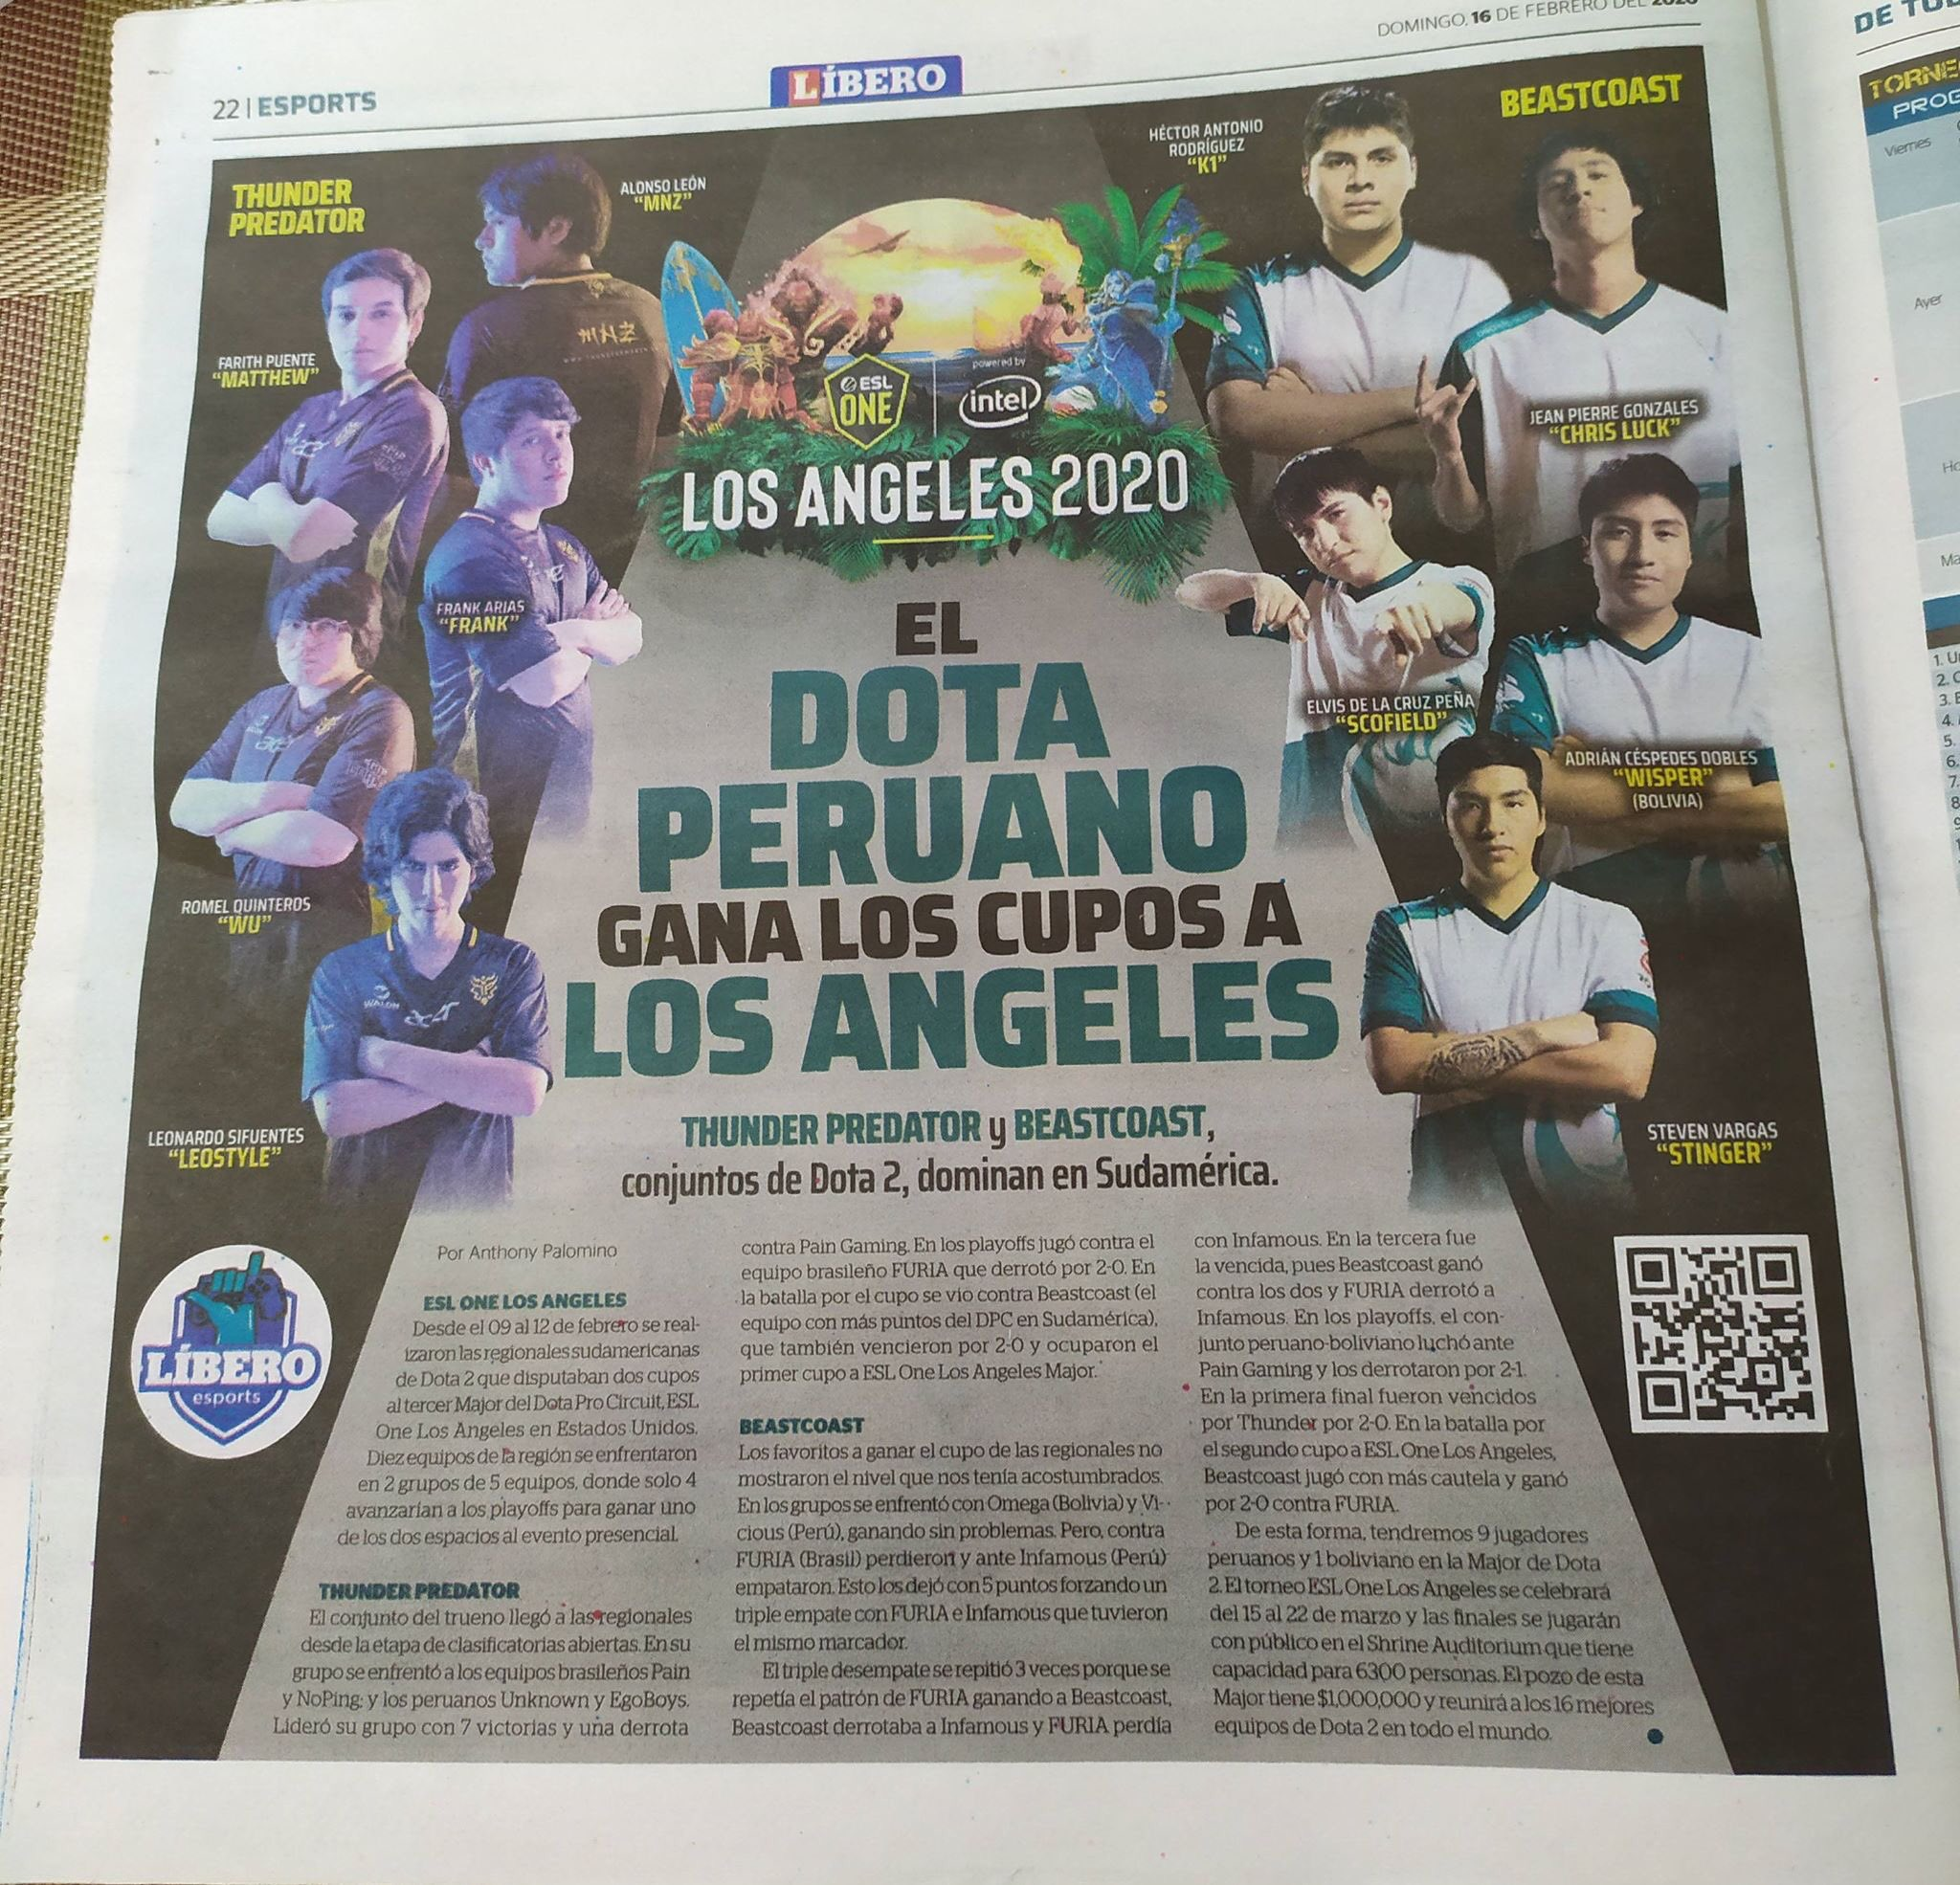 A newspaper article written in Spanish with both Peruvian ESL One LA qualifying teams — Thunder Predator and our very own Beastcoast! The image shows each player on both teams posing. Thunder Predator is on the left and Beastcoast is pictured on the right.